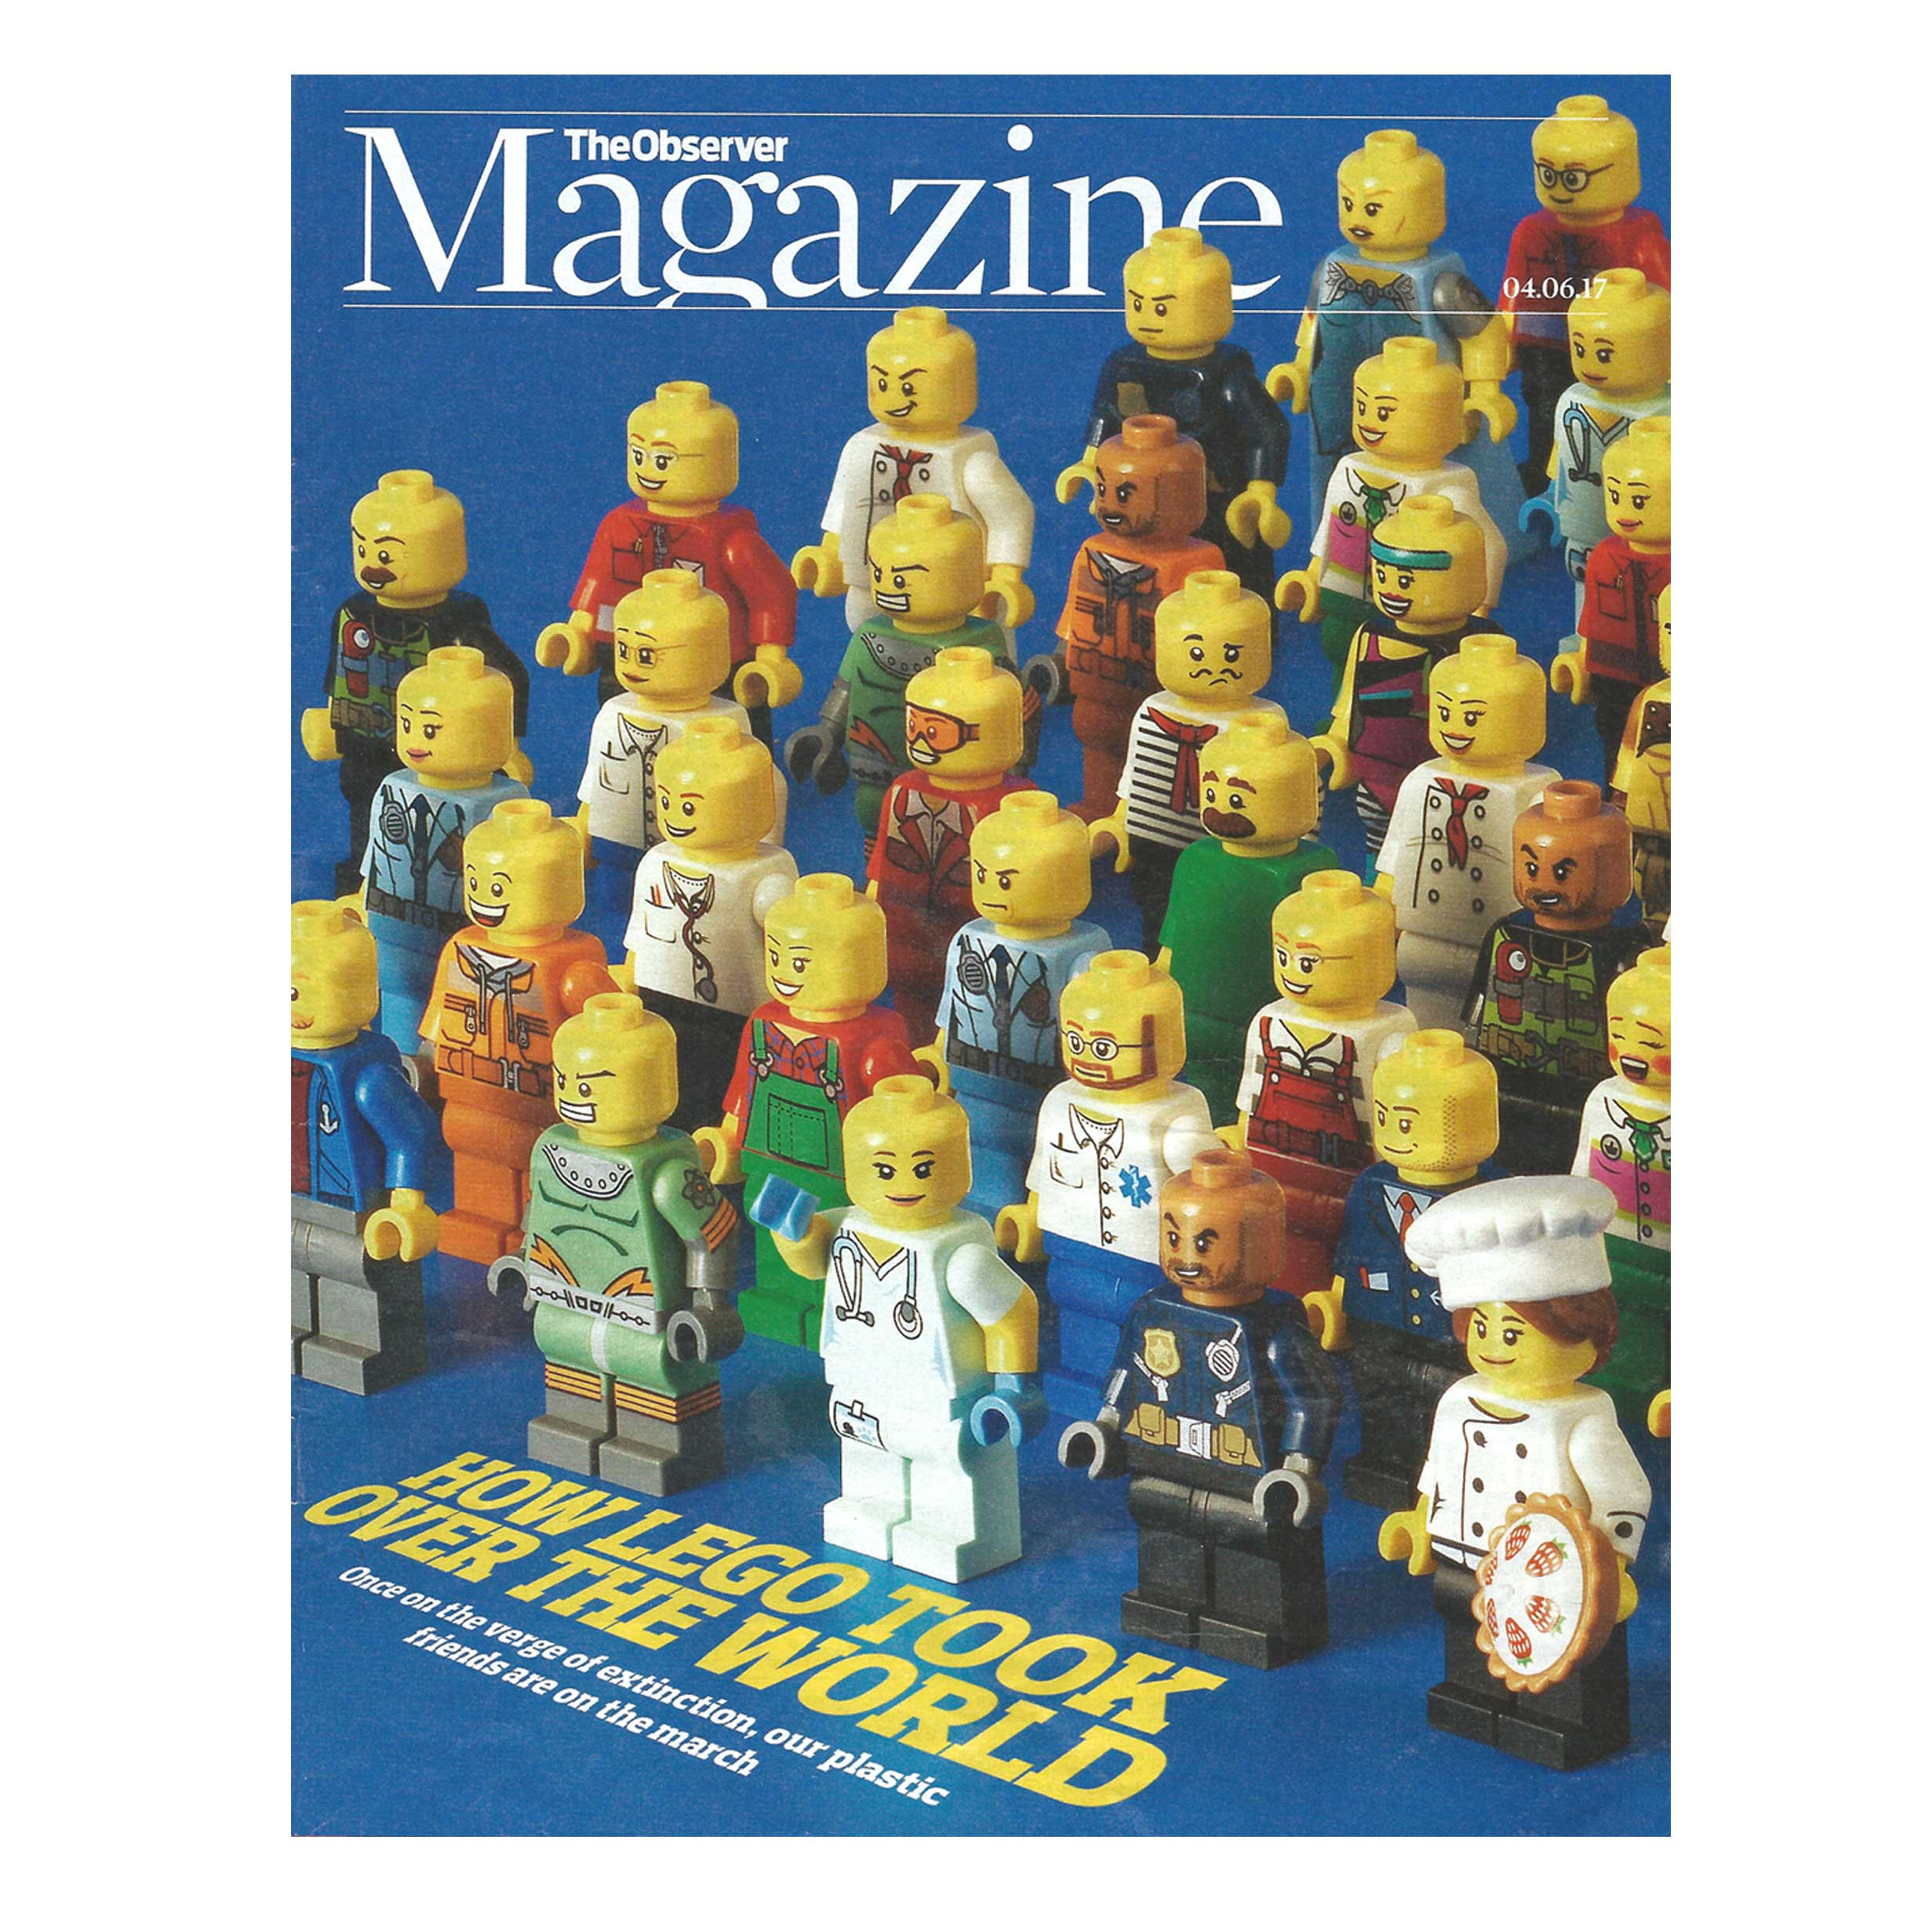 A six-page feature on the LEGO brand in The Observer Magazine